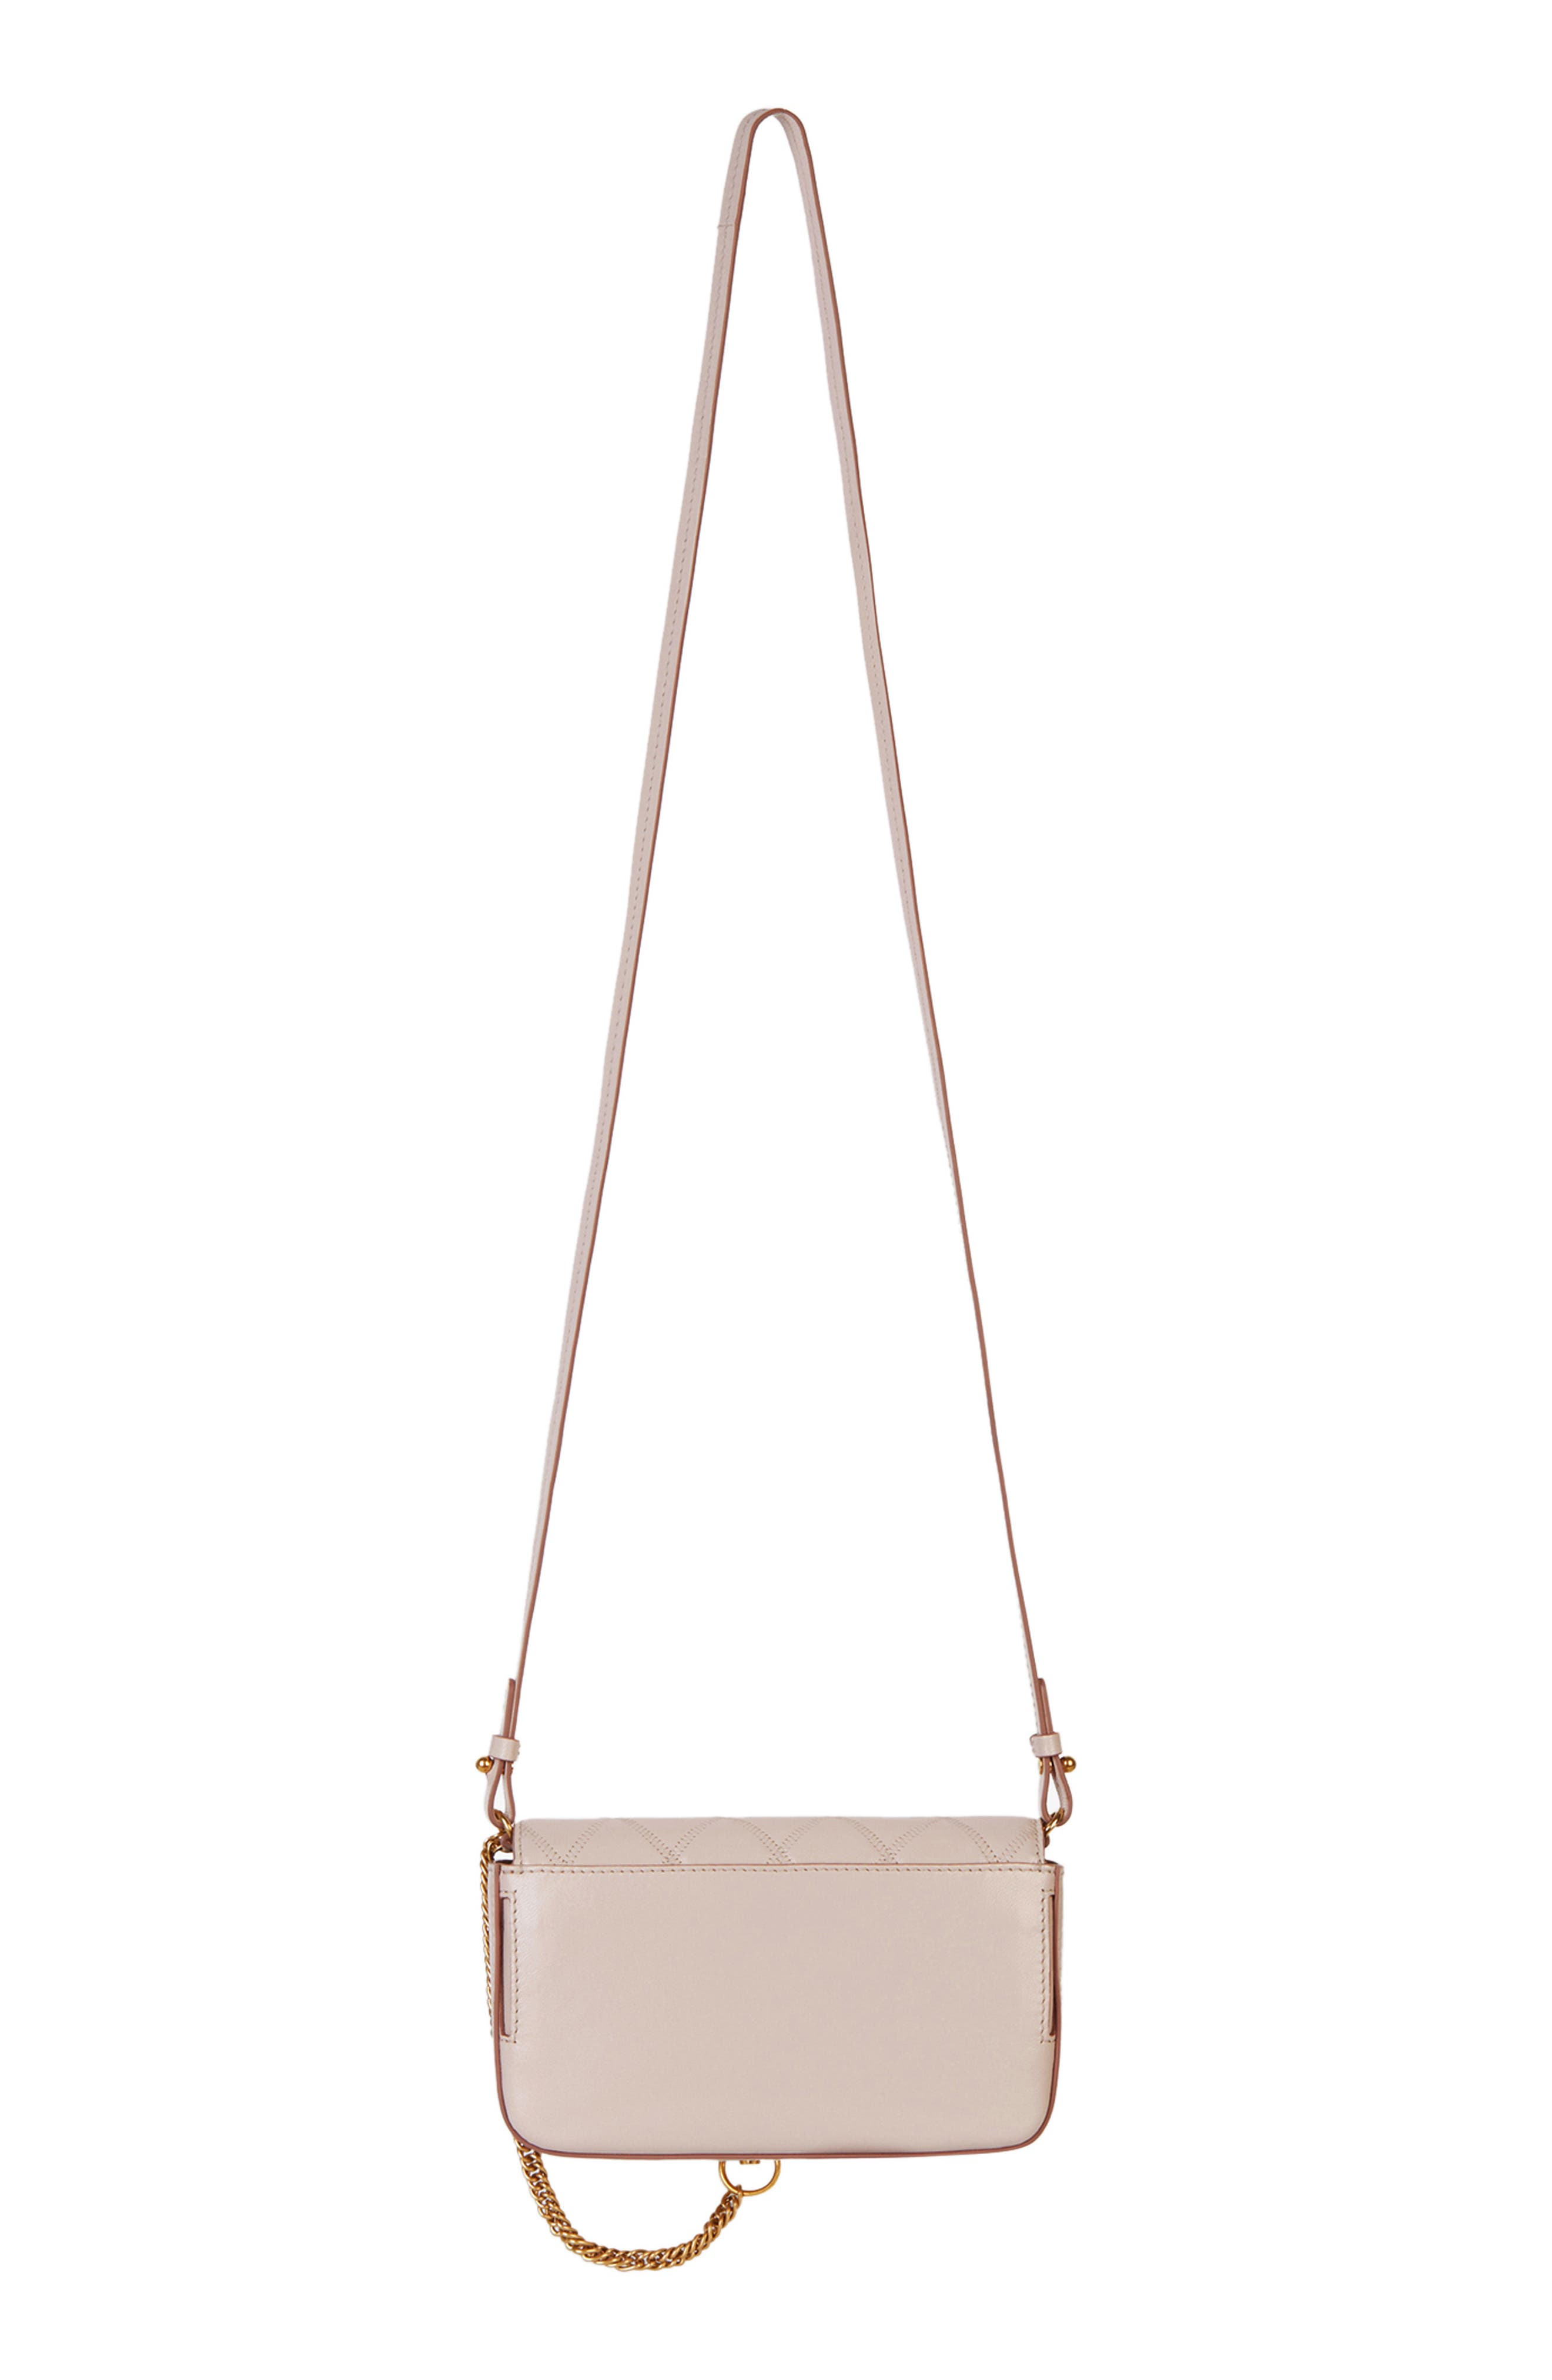 GIVENCHY,                             Mini Pocket Quilted Convertible Leather Bag,                             Alternate thumbnail 2, color,                             PALE PINK